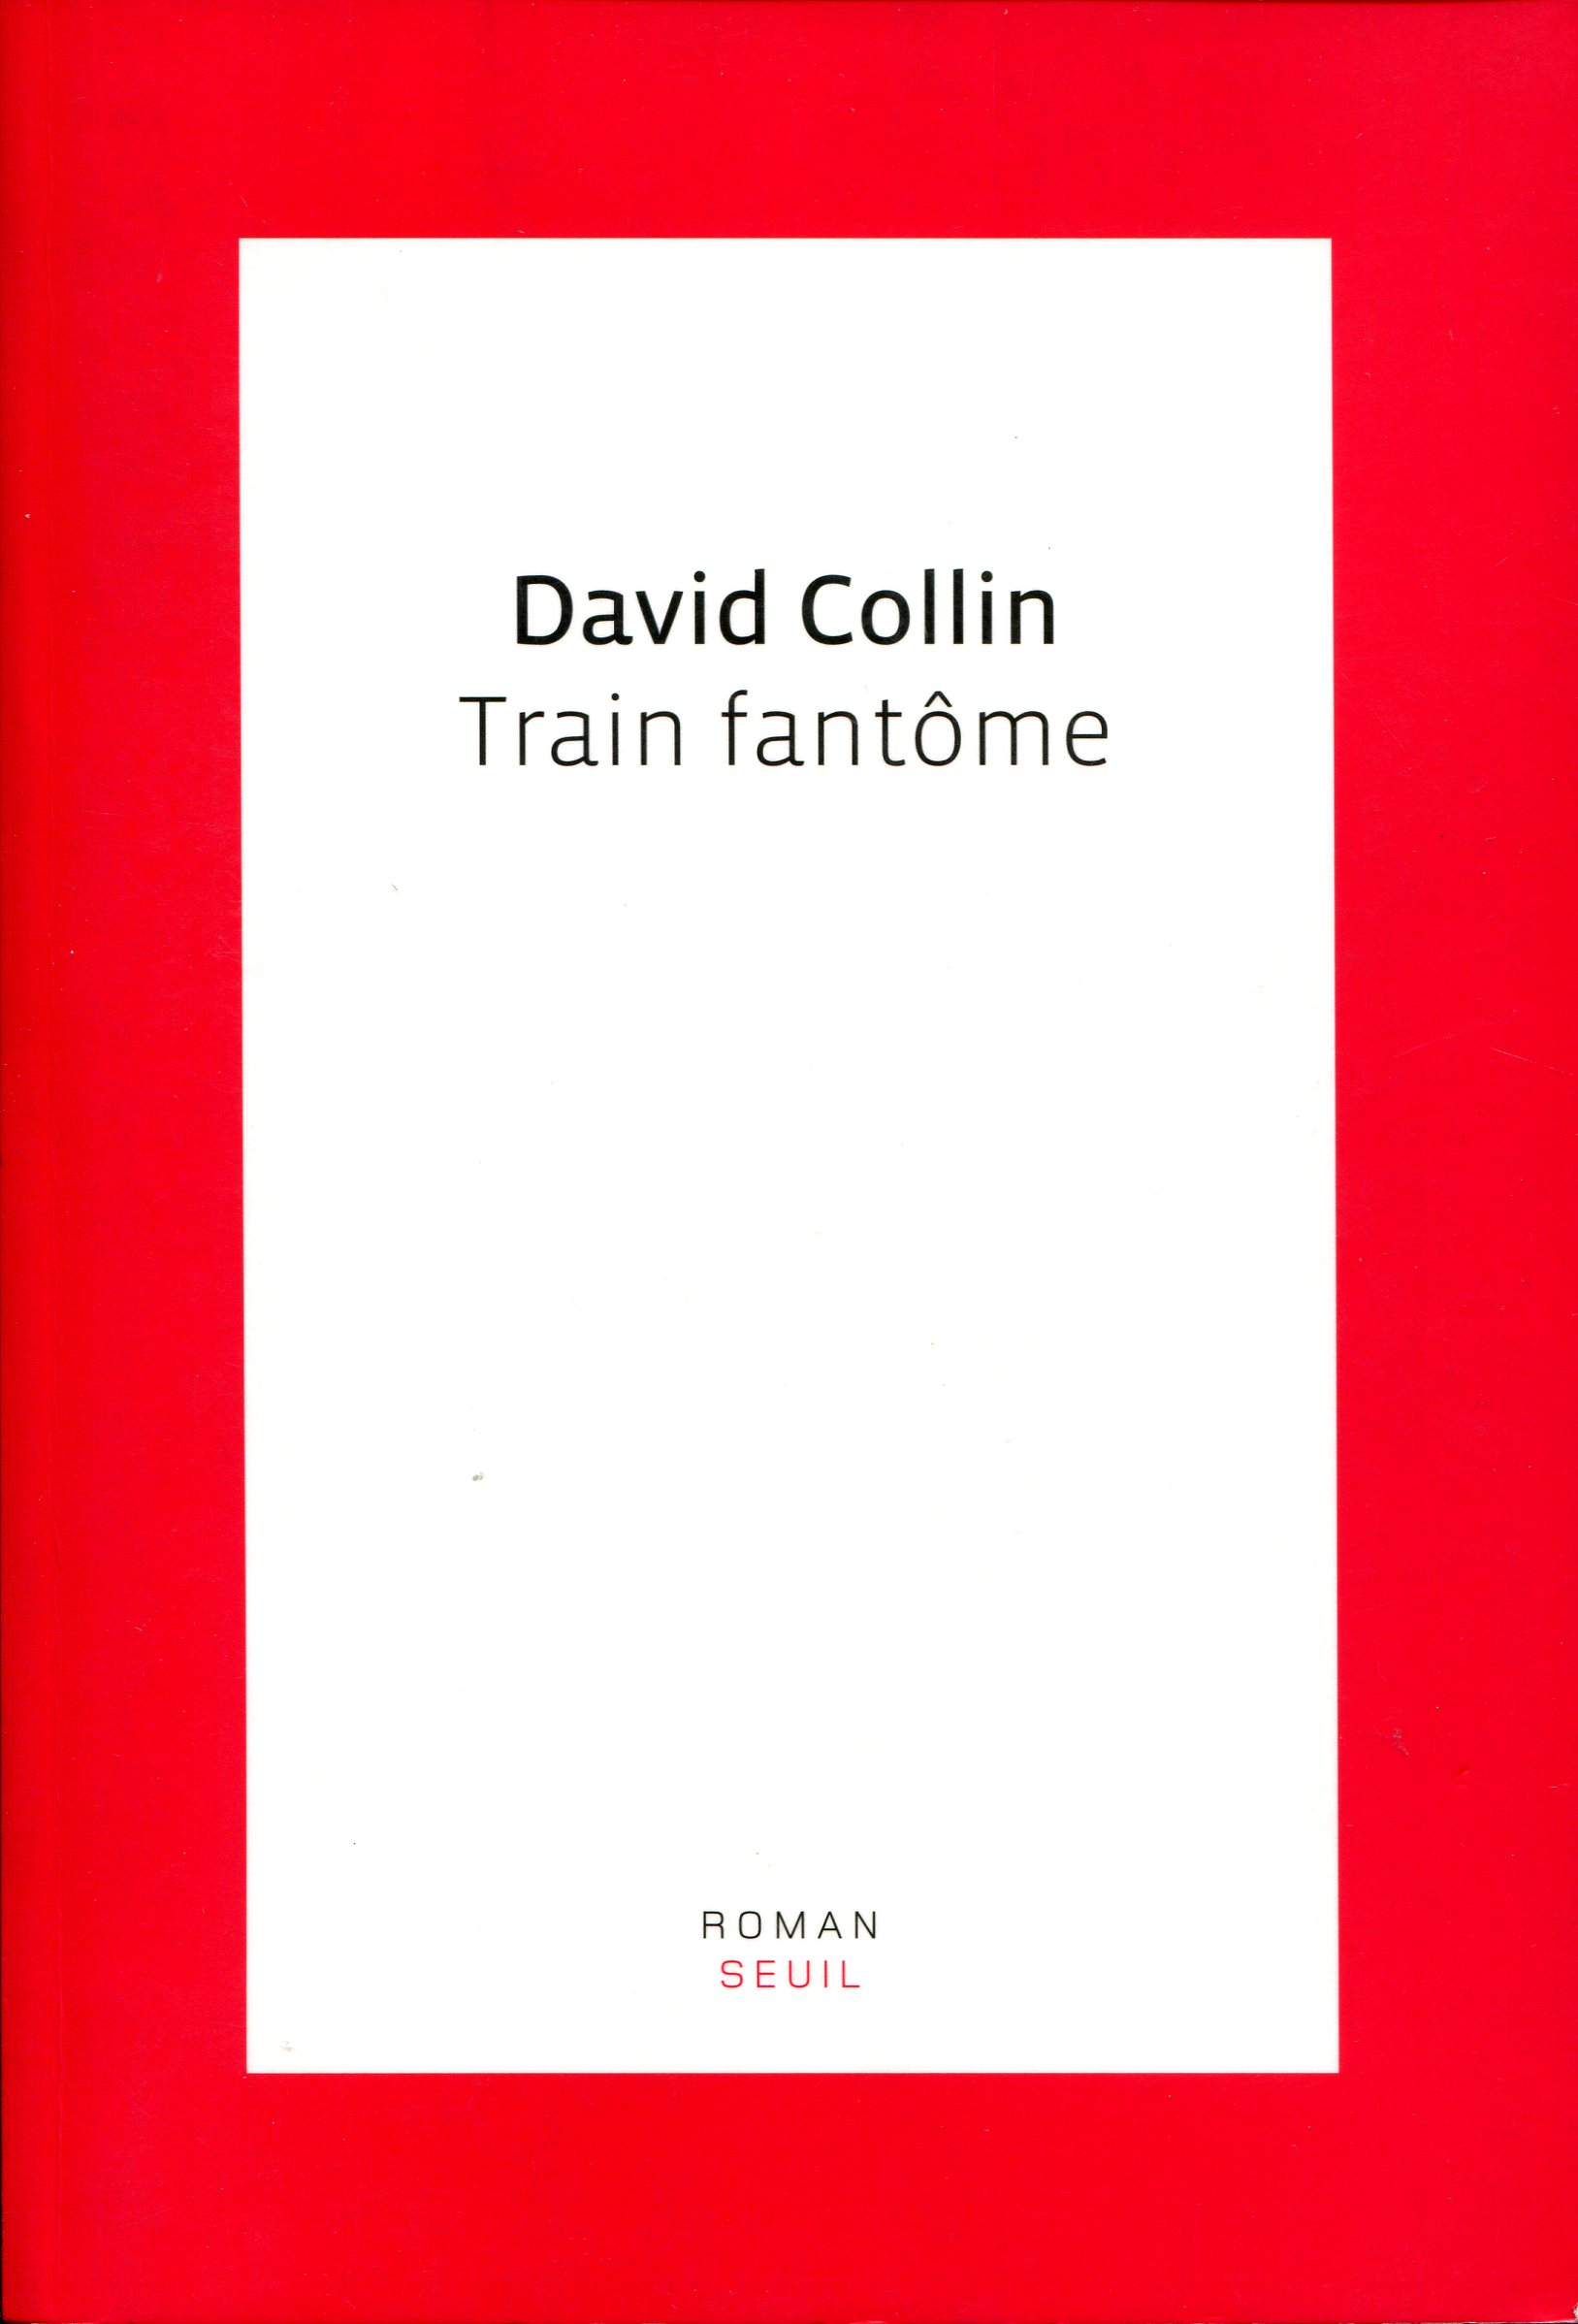 2007 Collin David Train Fantôme.jpg